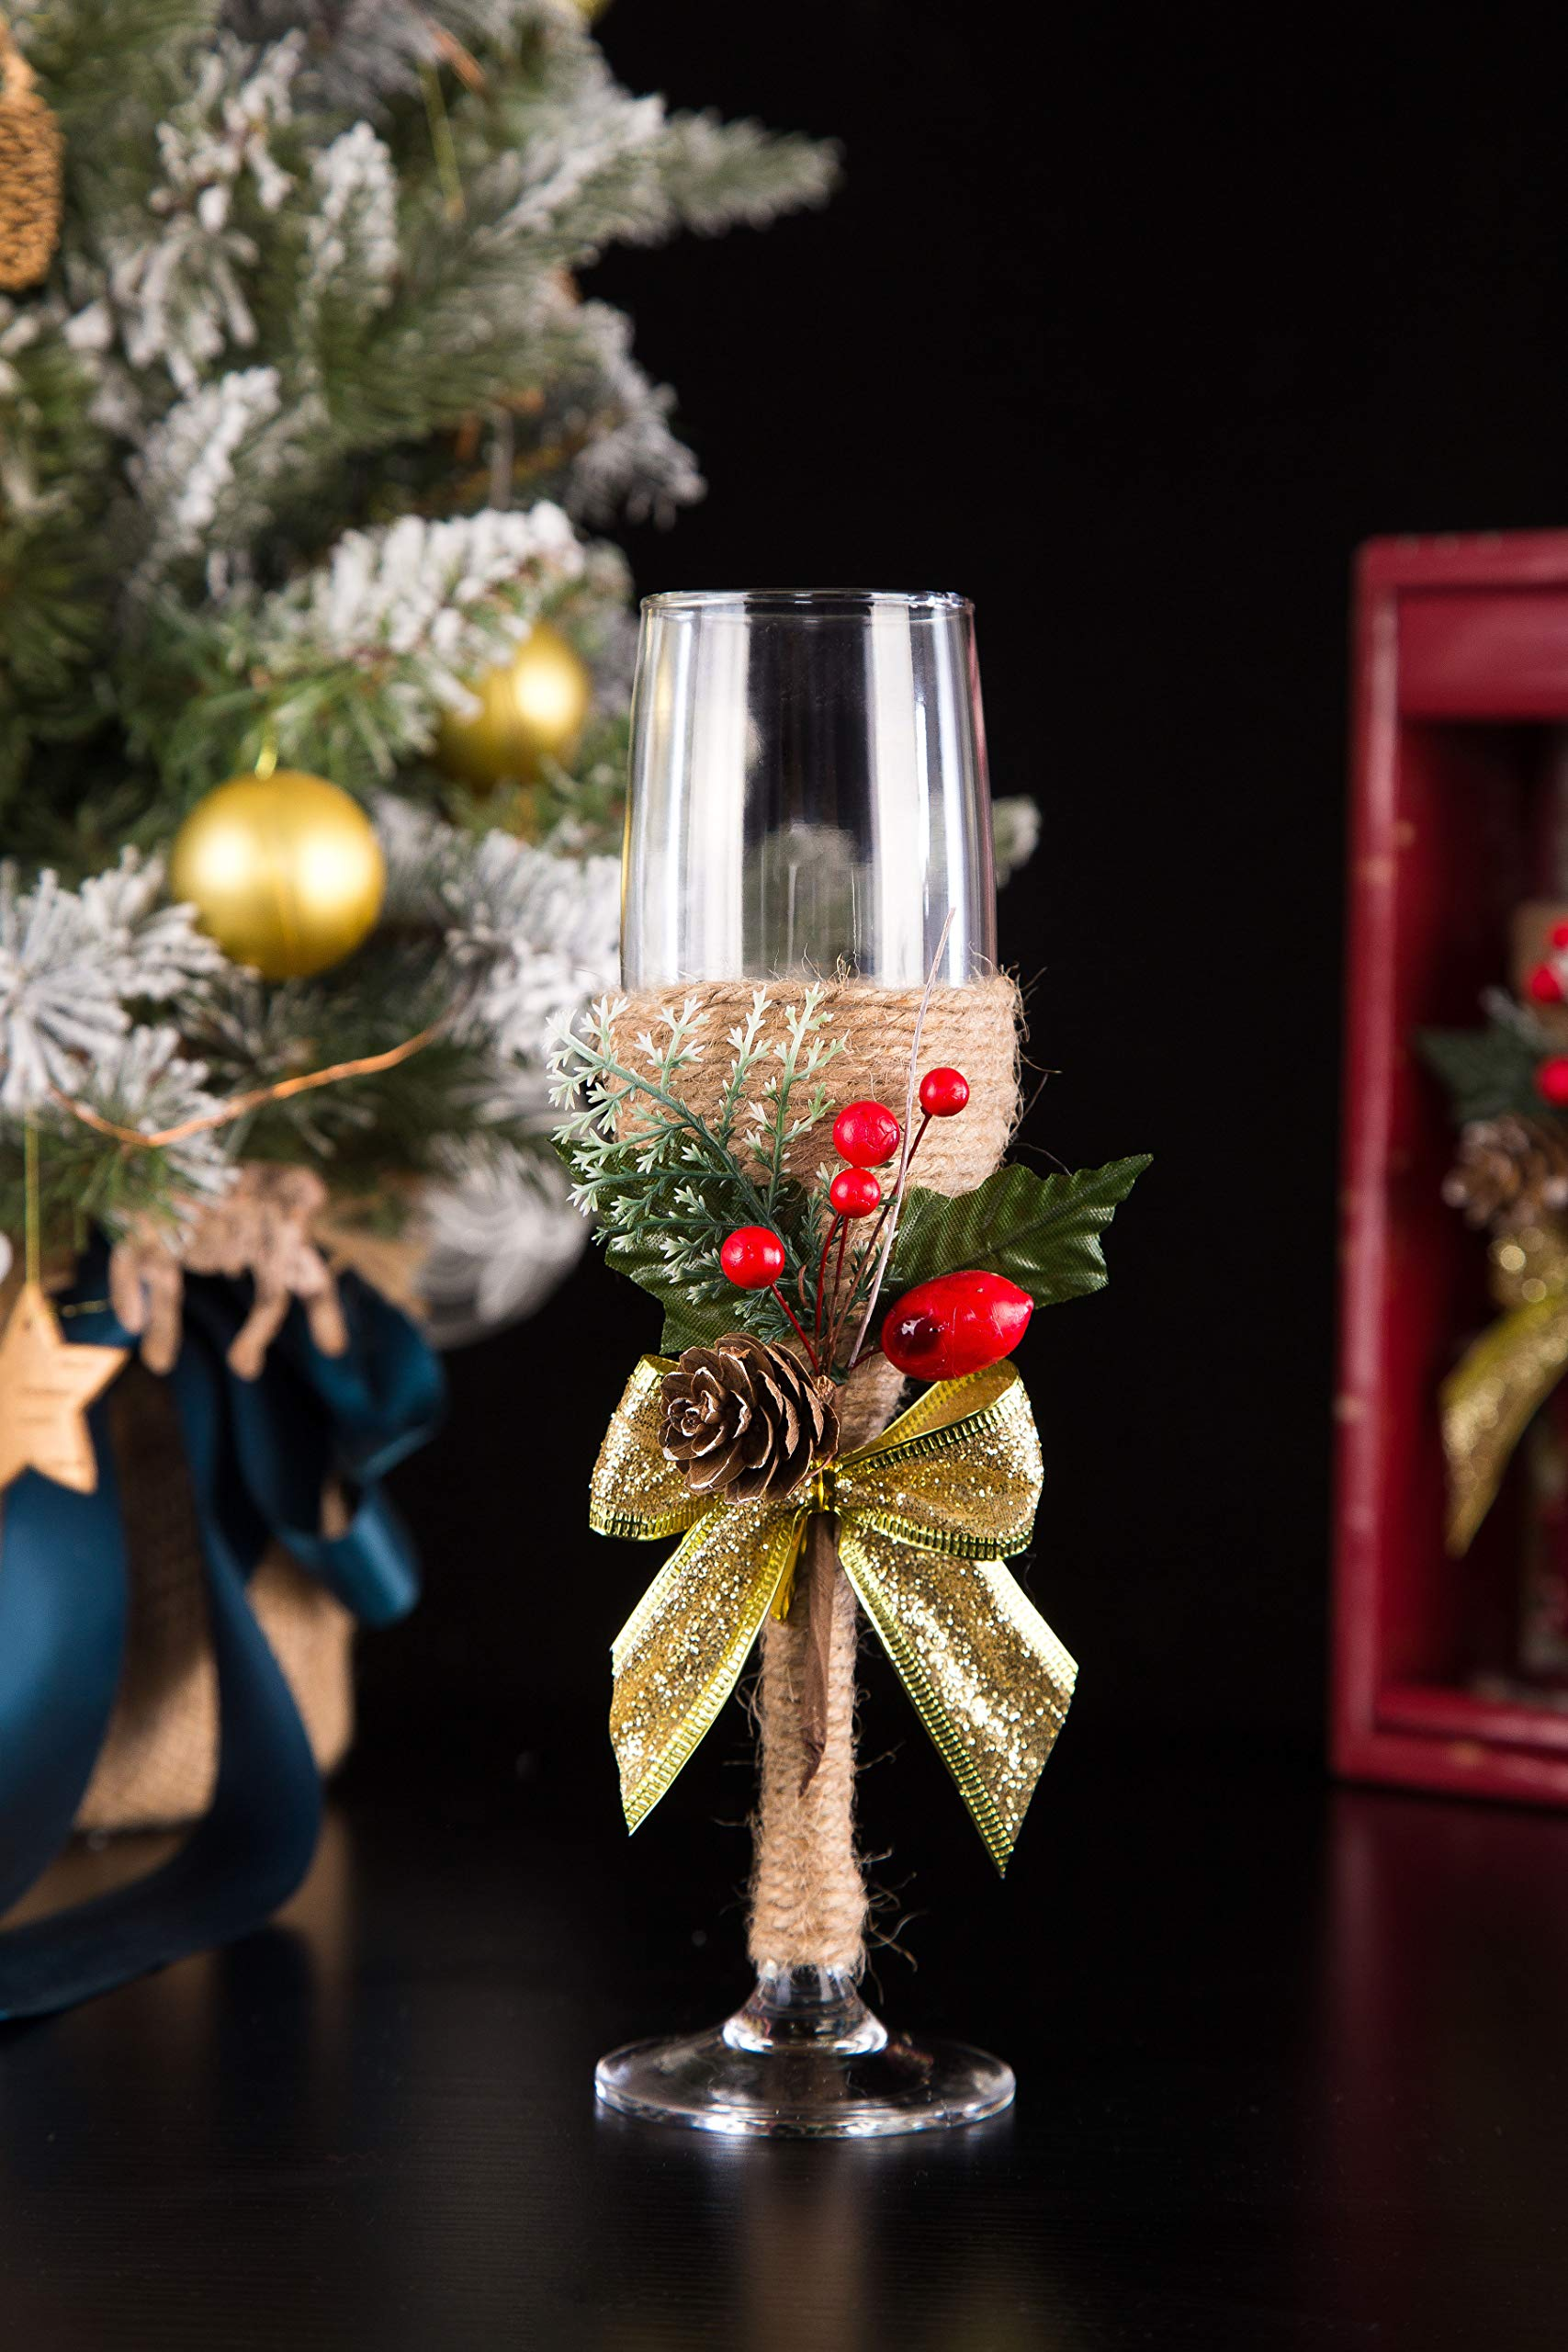 Litiny Christmas Decor Champagne Flute-Creative Christmas Gifts,Couples Gifts,Unique Gifts for Mom,Wedding Gifts